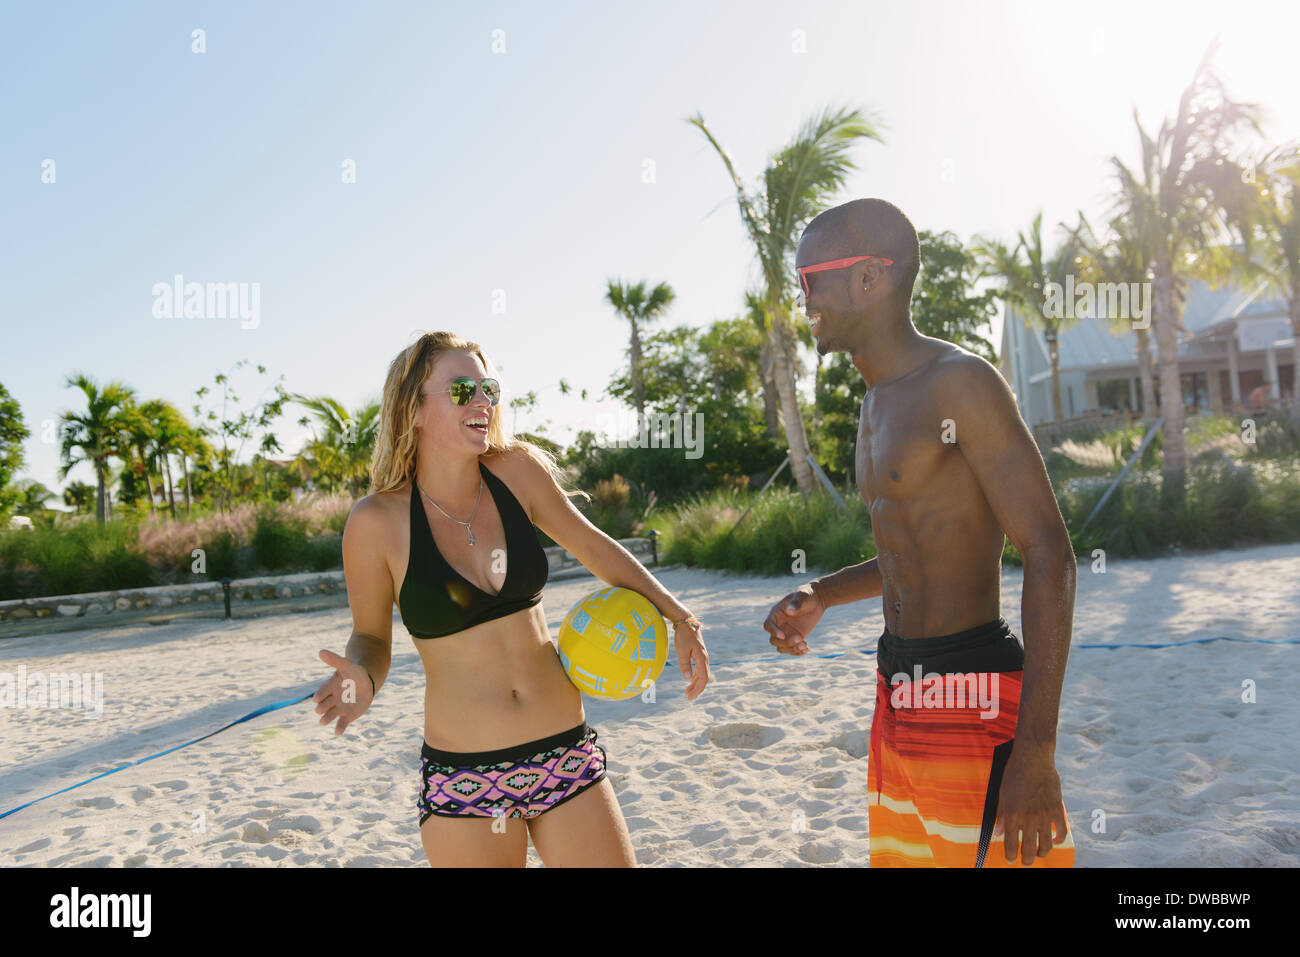 Deux jeunes amis adultes avec beach volley, Providenciales, Turks and Caicos Islands, Caribbean Photo Stock